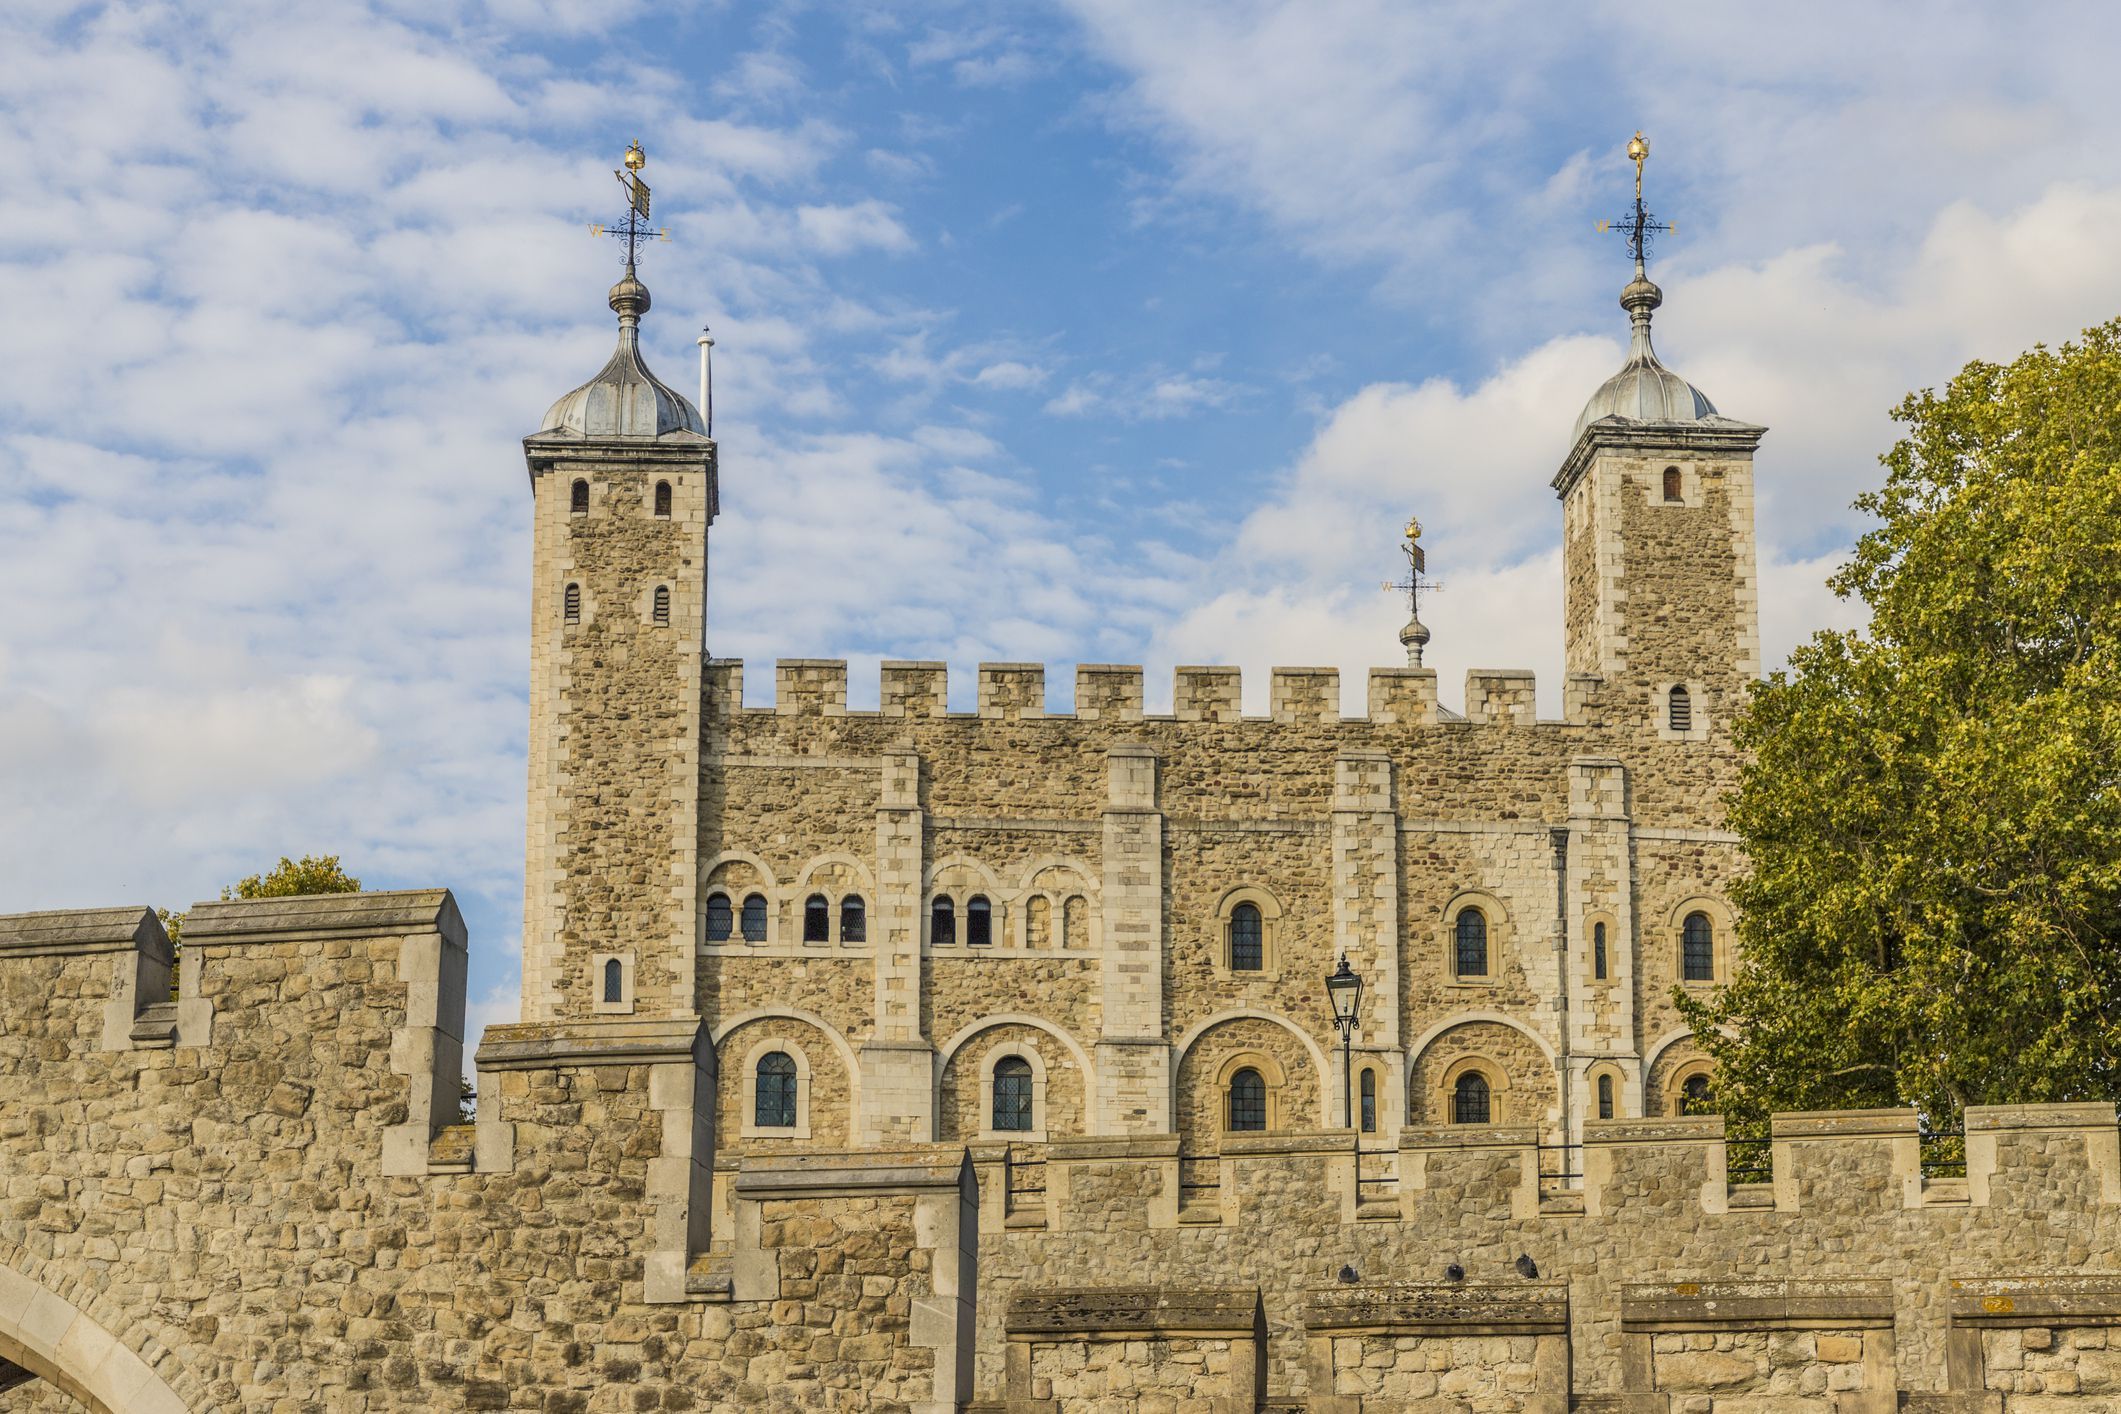 Don't Miss Attractions and Activities on Your UK Visit